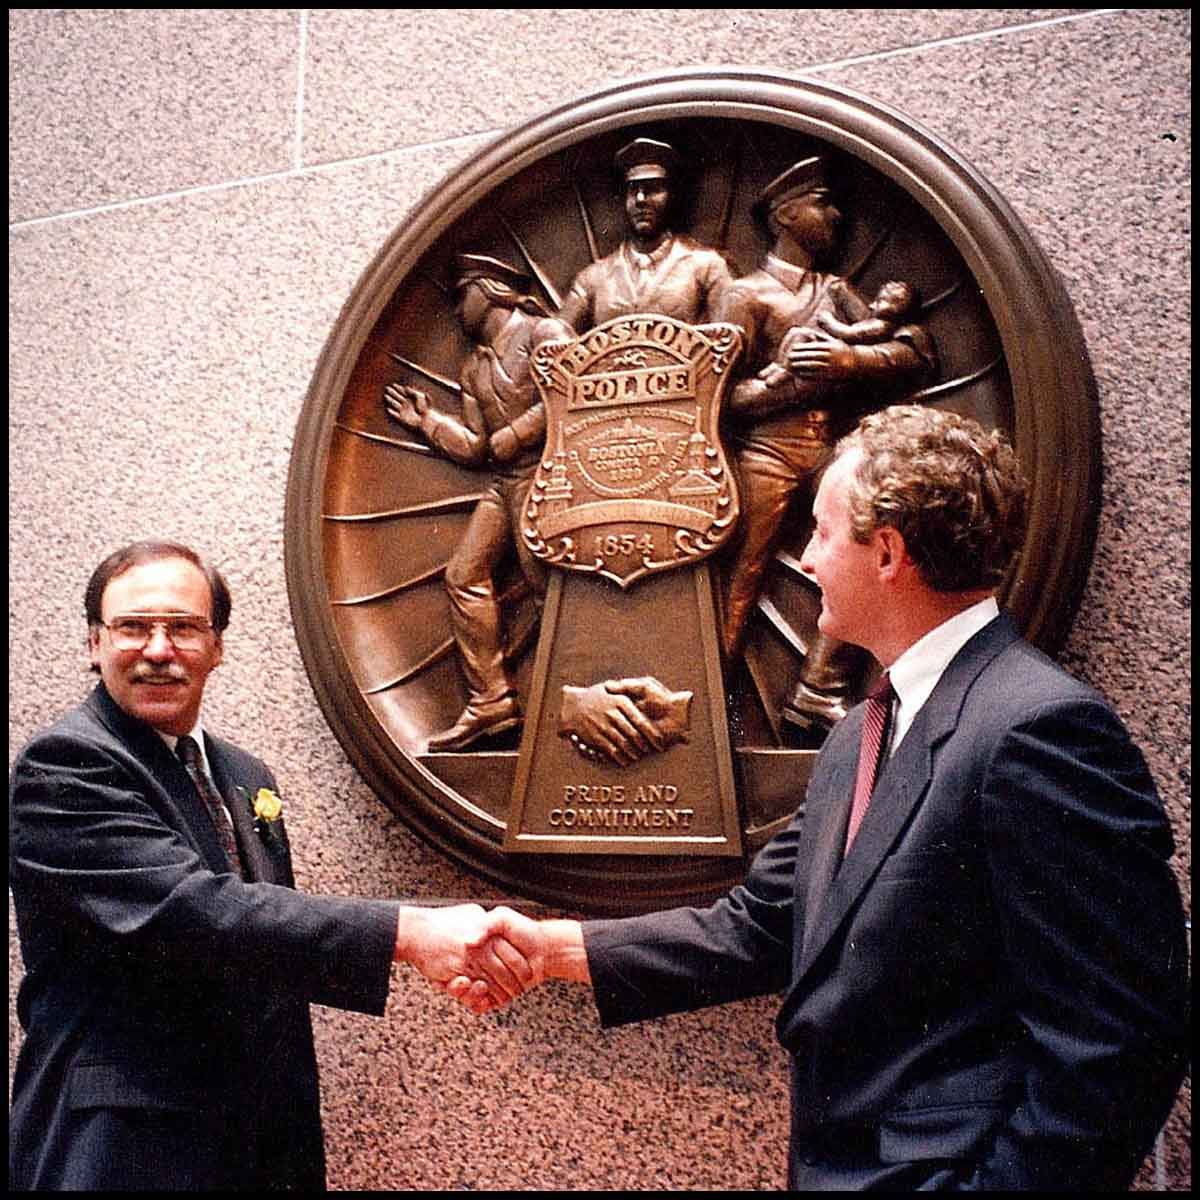 photo of sculptor Robert Shure shaking hands with Boston official at dedication ceremony for Police and Fire department plaques, standing in front of large, bronze-colored police plaque mounted on stone wall